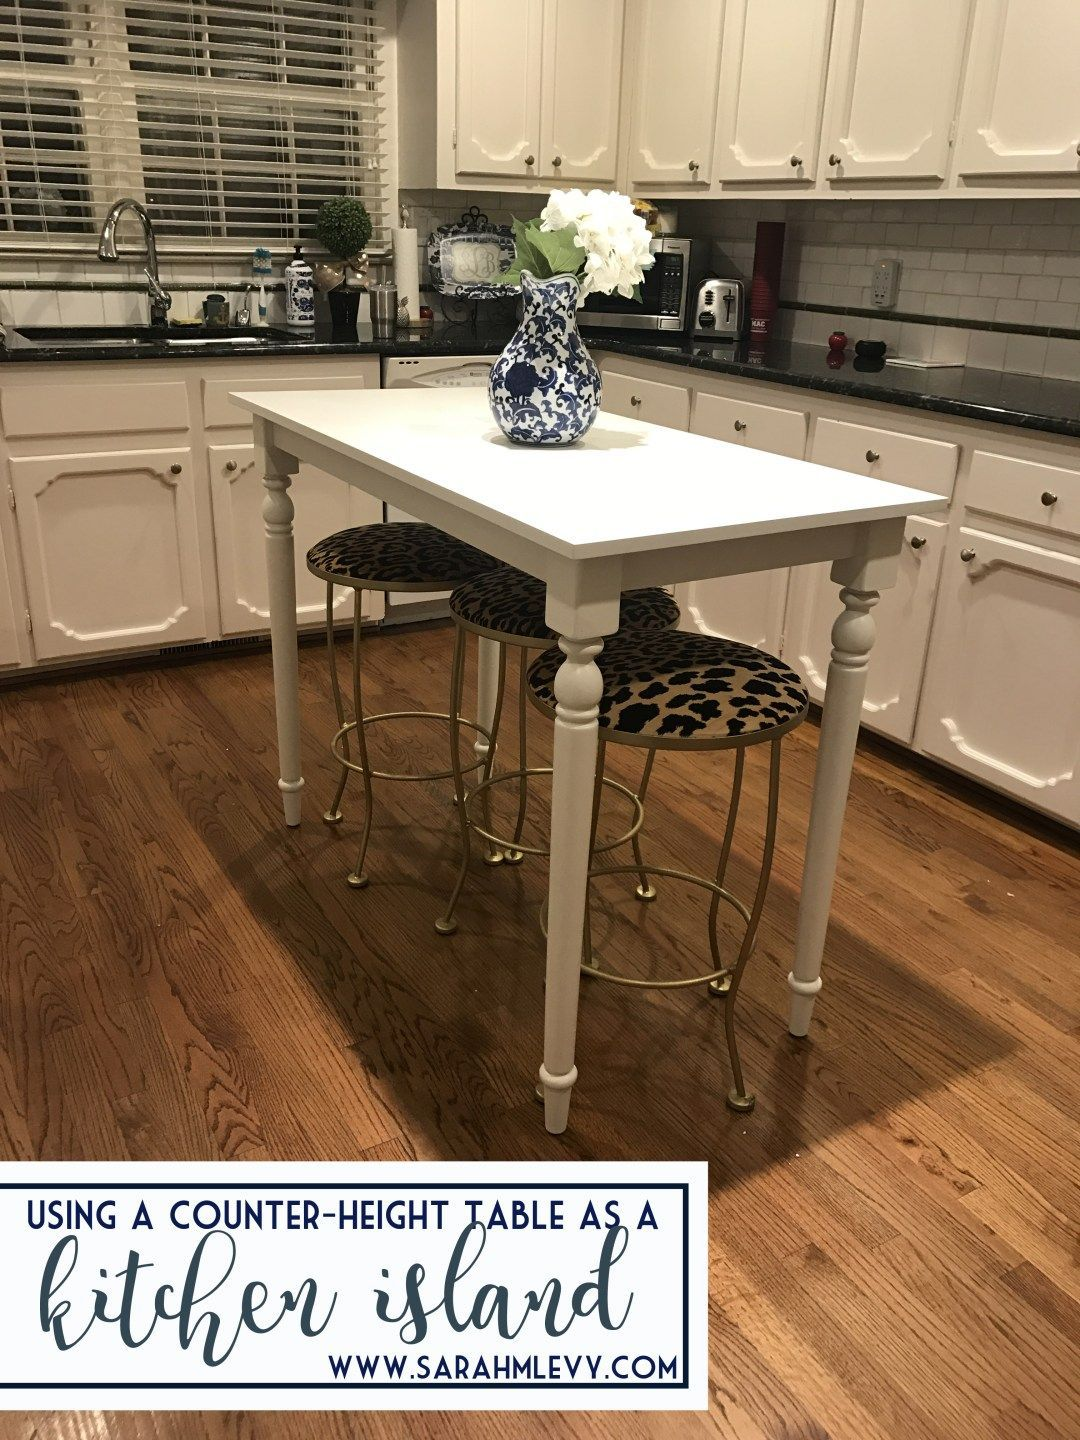 Counter Height Table As A Dream Kitchen Island With Blue And White Chinoiserie And Serenget Dream Kitchen Island Counter Height Kitchen Table Diy Kitchen Table